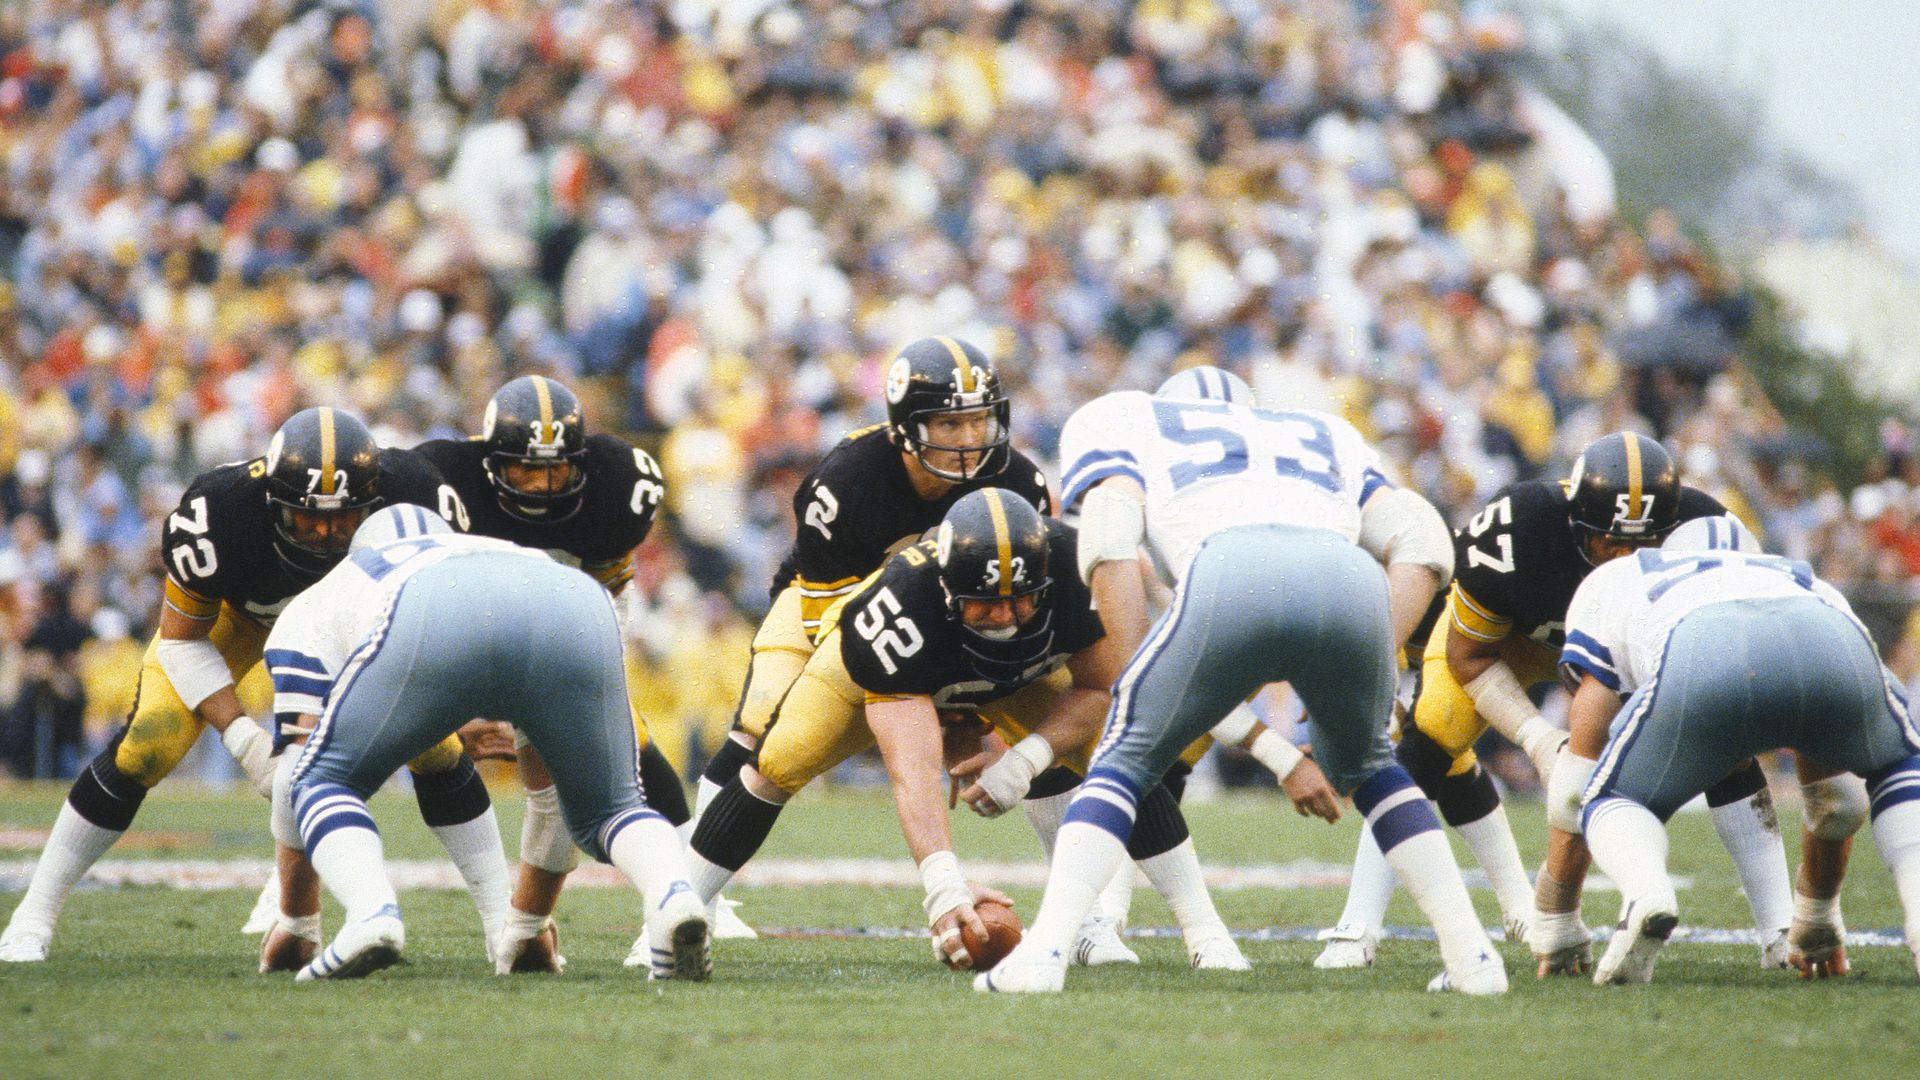 Terry Bradshaw #12 and Mike Webster #52 of the Pittsburgh Steelers against the Dallas Cowboys during Super Bowl XIII.